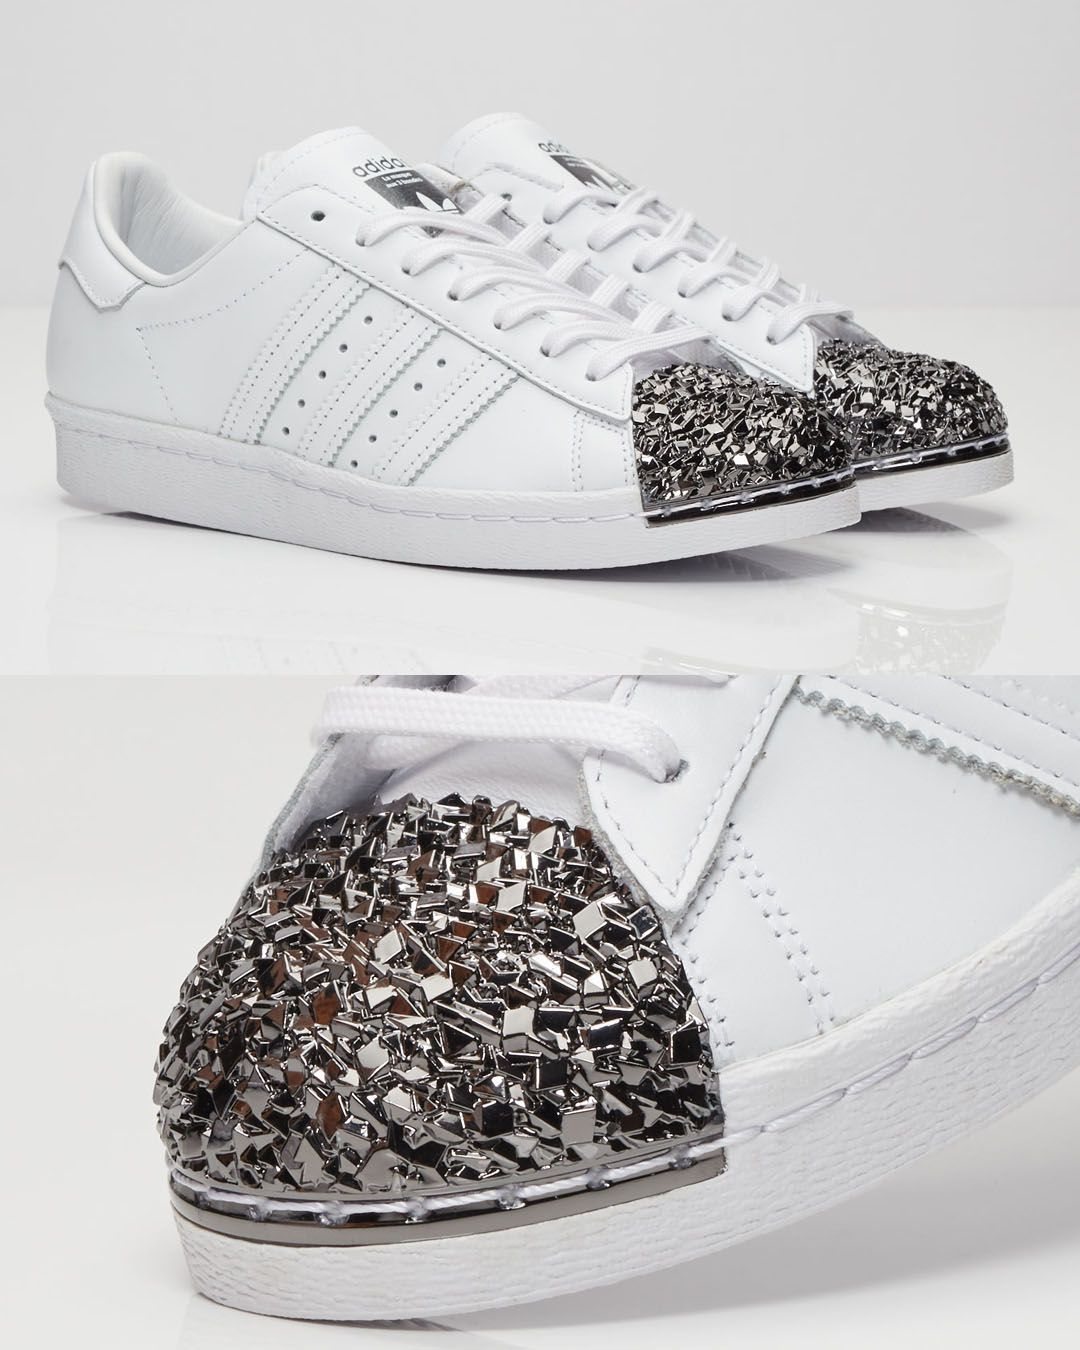 adiads superstar metal toe S76532 WOMENS ATHLETIC FASHION SNEAKERS  amzn.to 2kR9jl3 f14670b9032ee